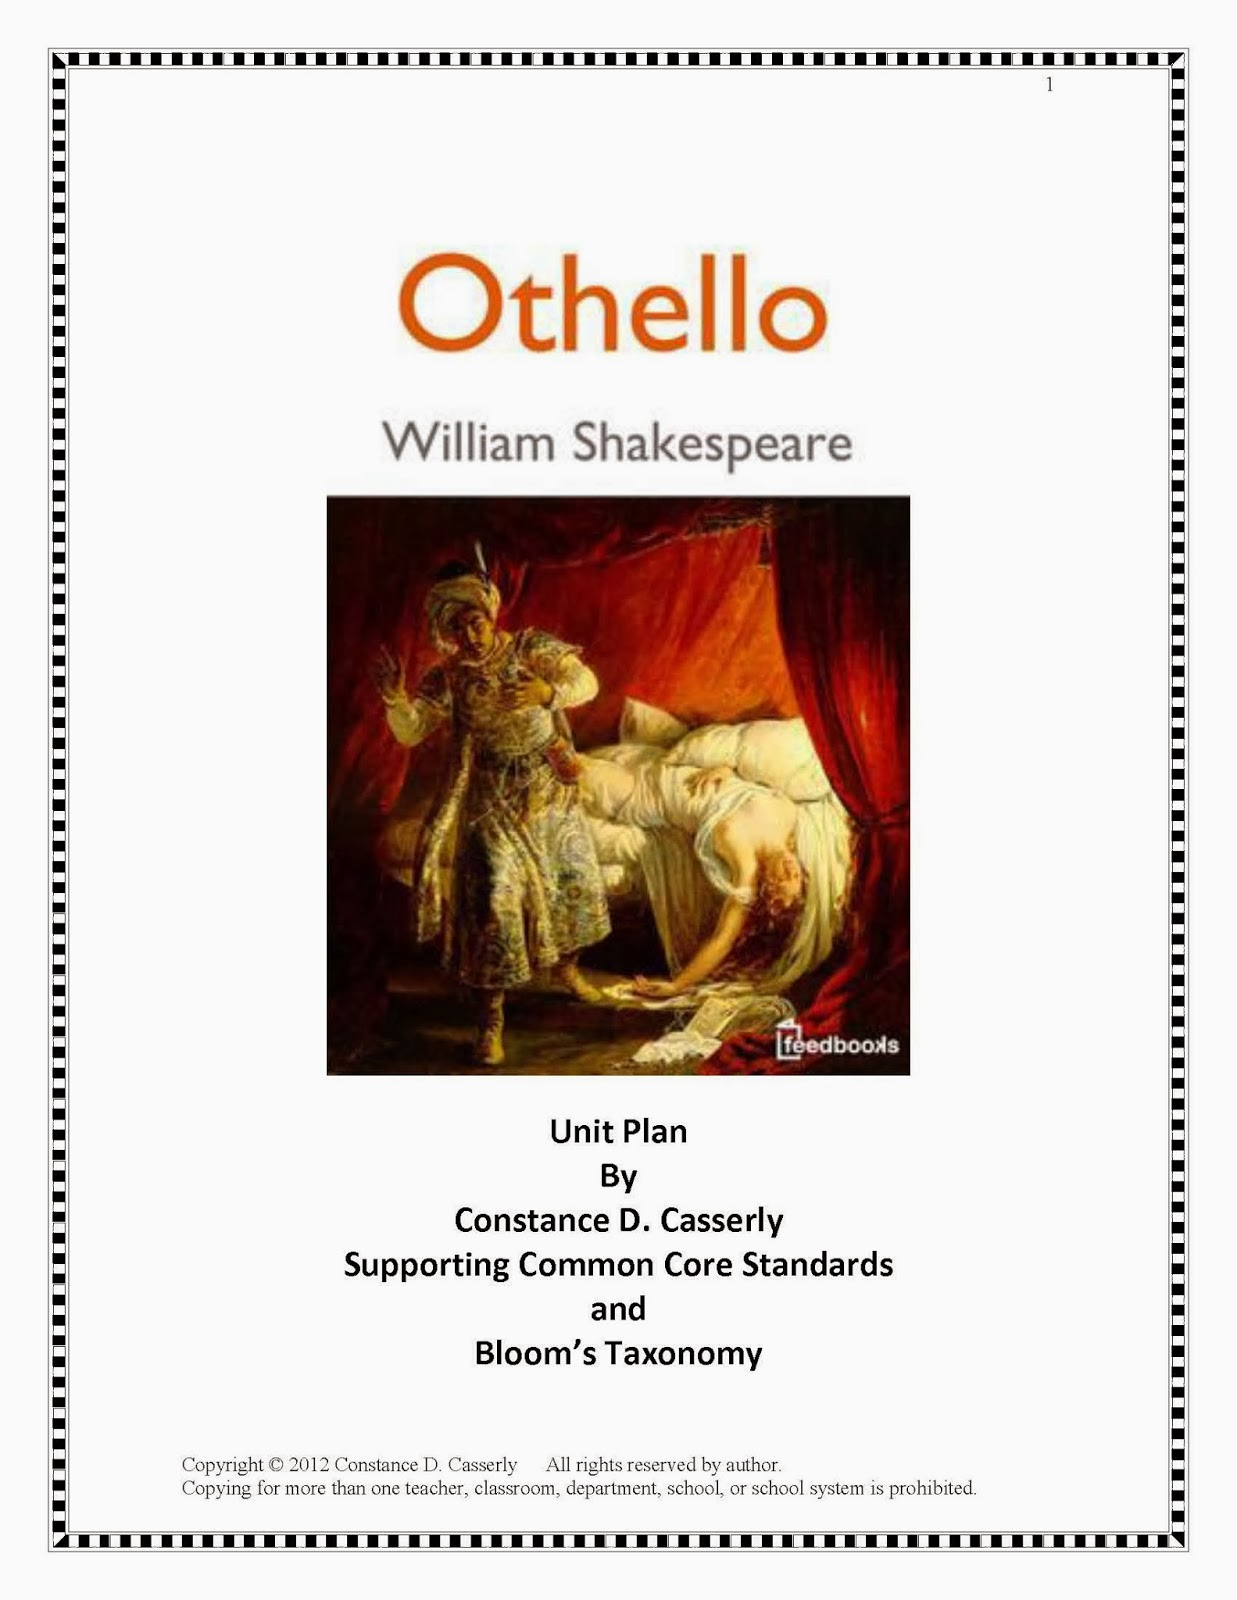 critical essay on othello othello new critical essays google books